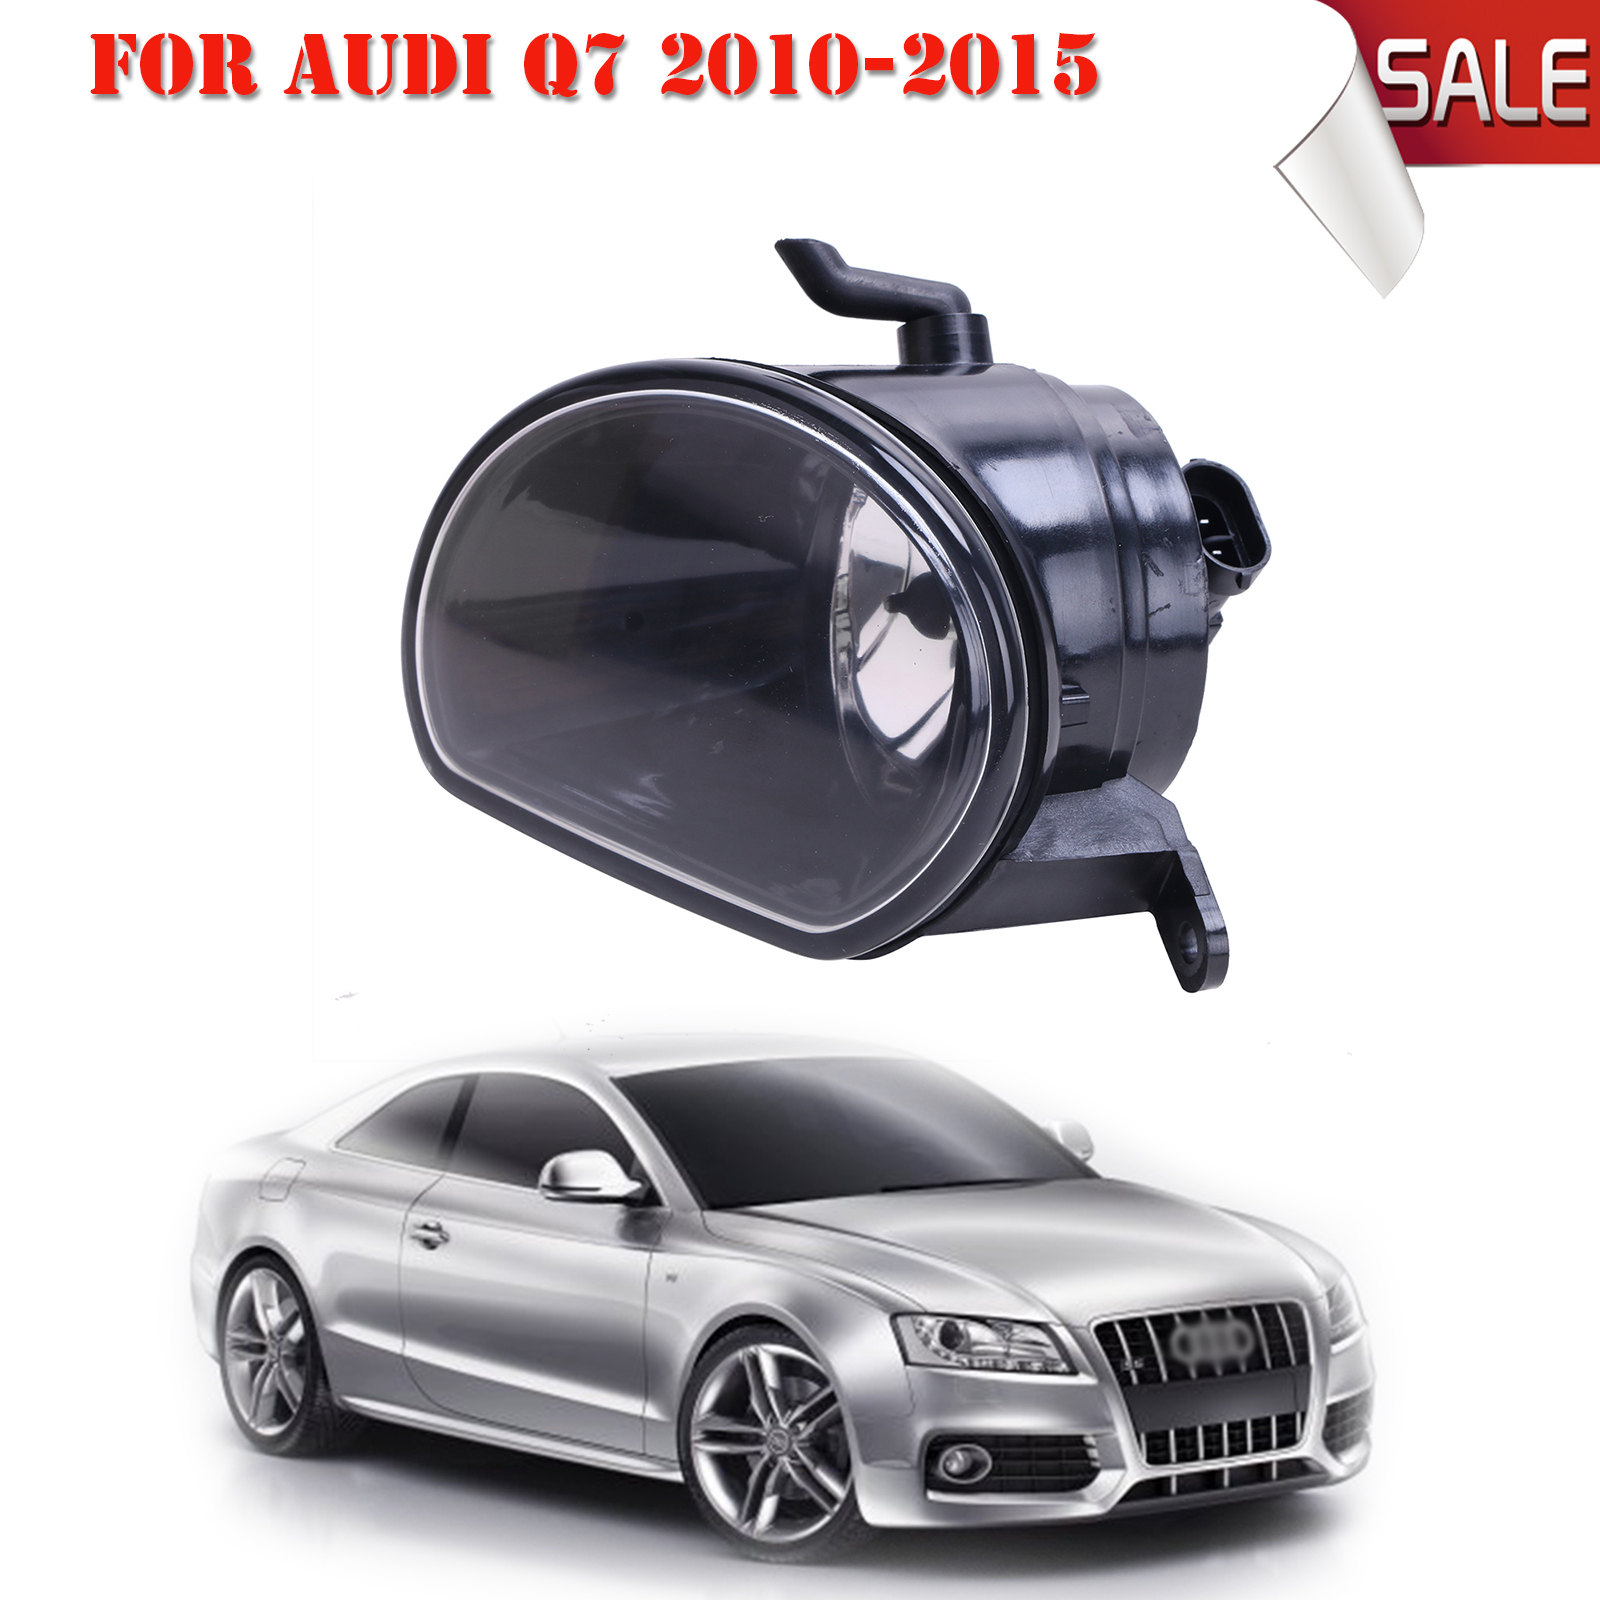 Right Side Front Fog Light Fog Lamp with H11 Bulb For Audi Q7 2010 2011 2012 2013 2014 2015 Car-Styling #P316-R for vw golf 6 gti 2009 2010 2011 jetta 6 gli 2011 2012 2013 2014 new front right halogen new fog lamp fog light car styling